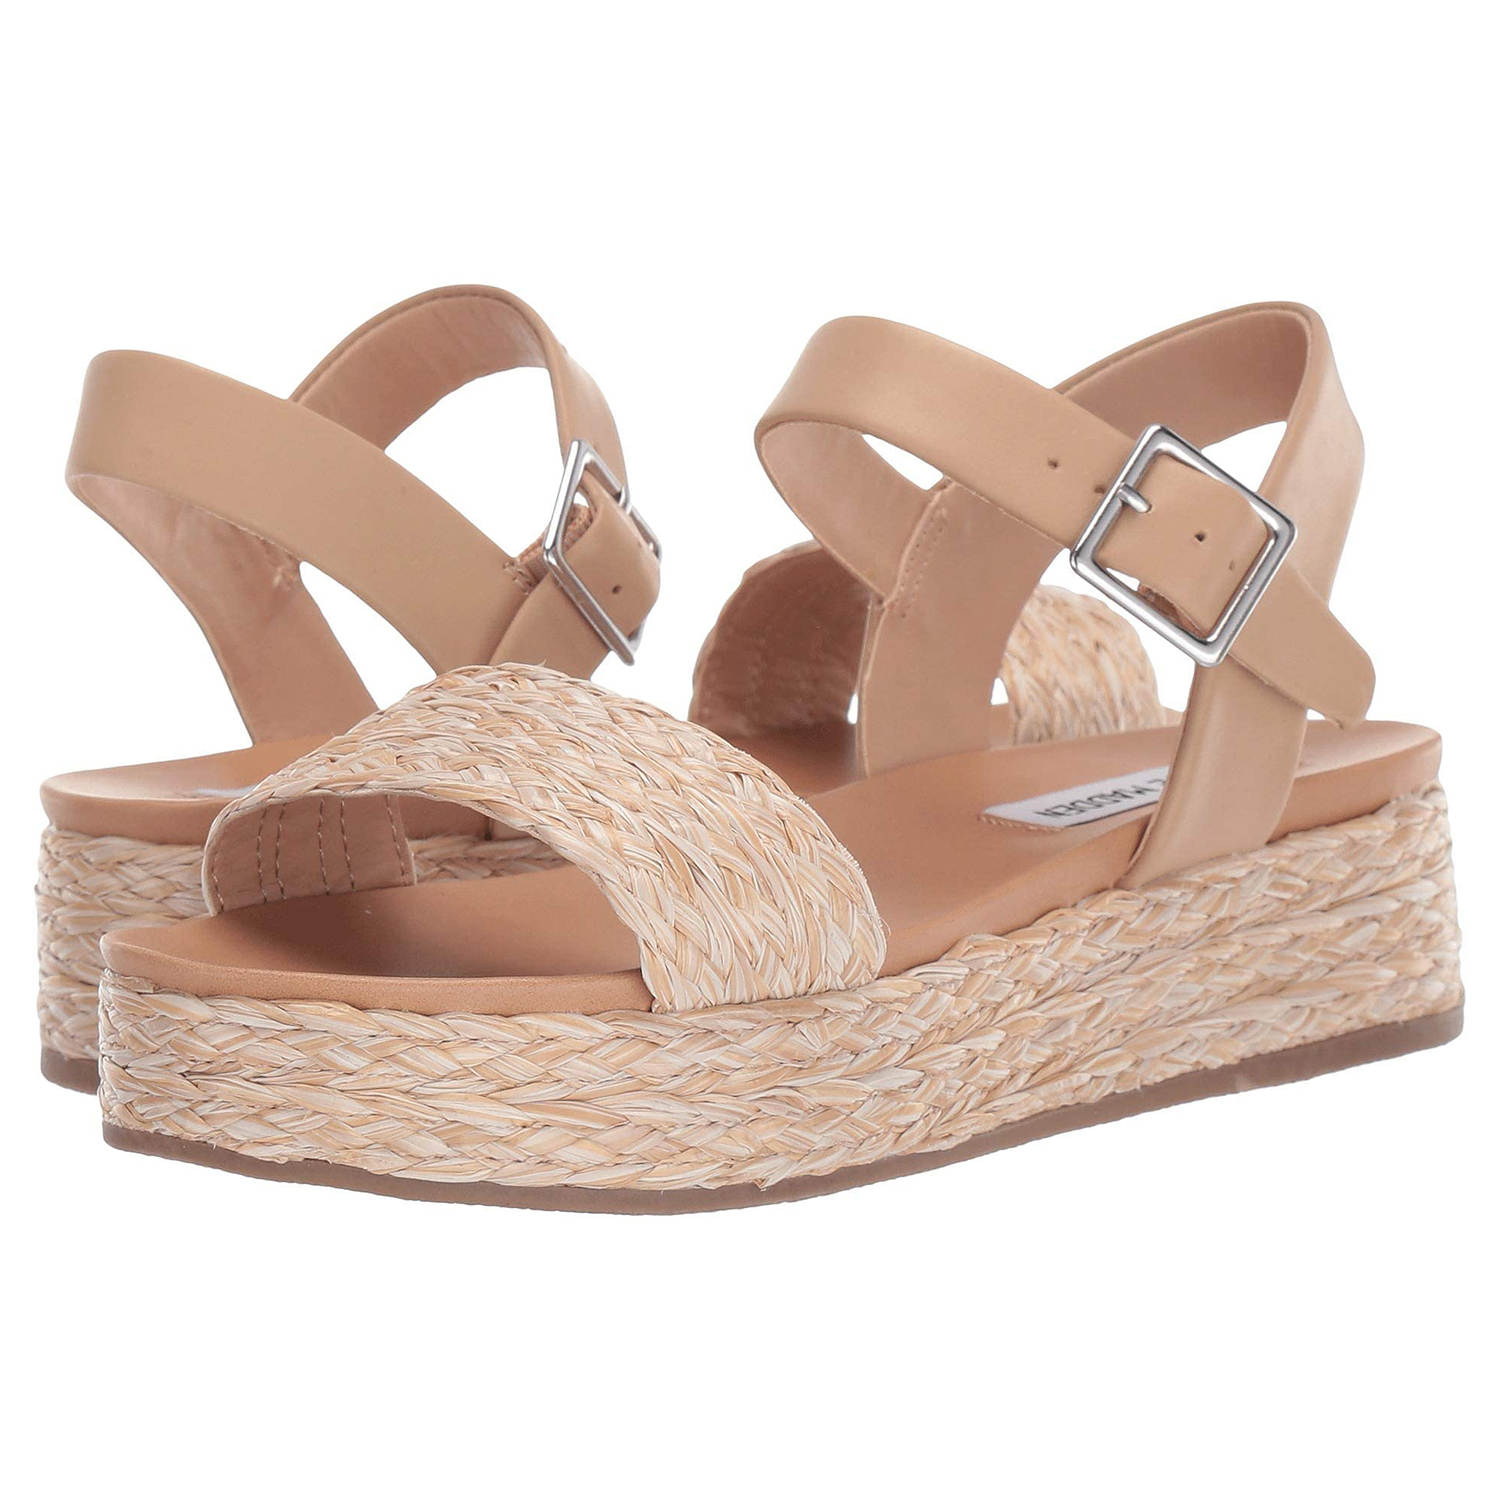 Steve Madden Accord Platform Sandals